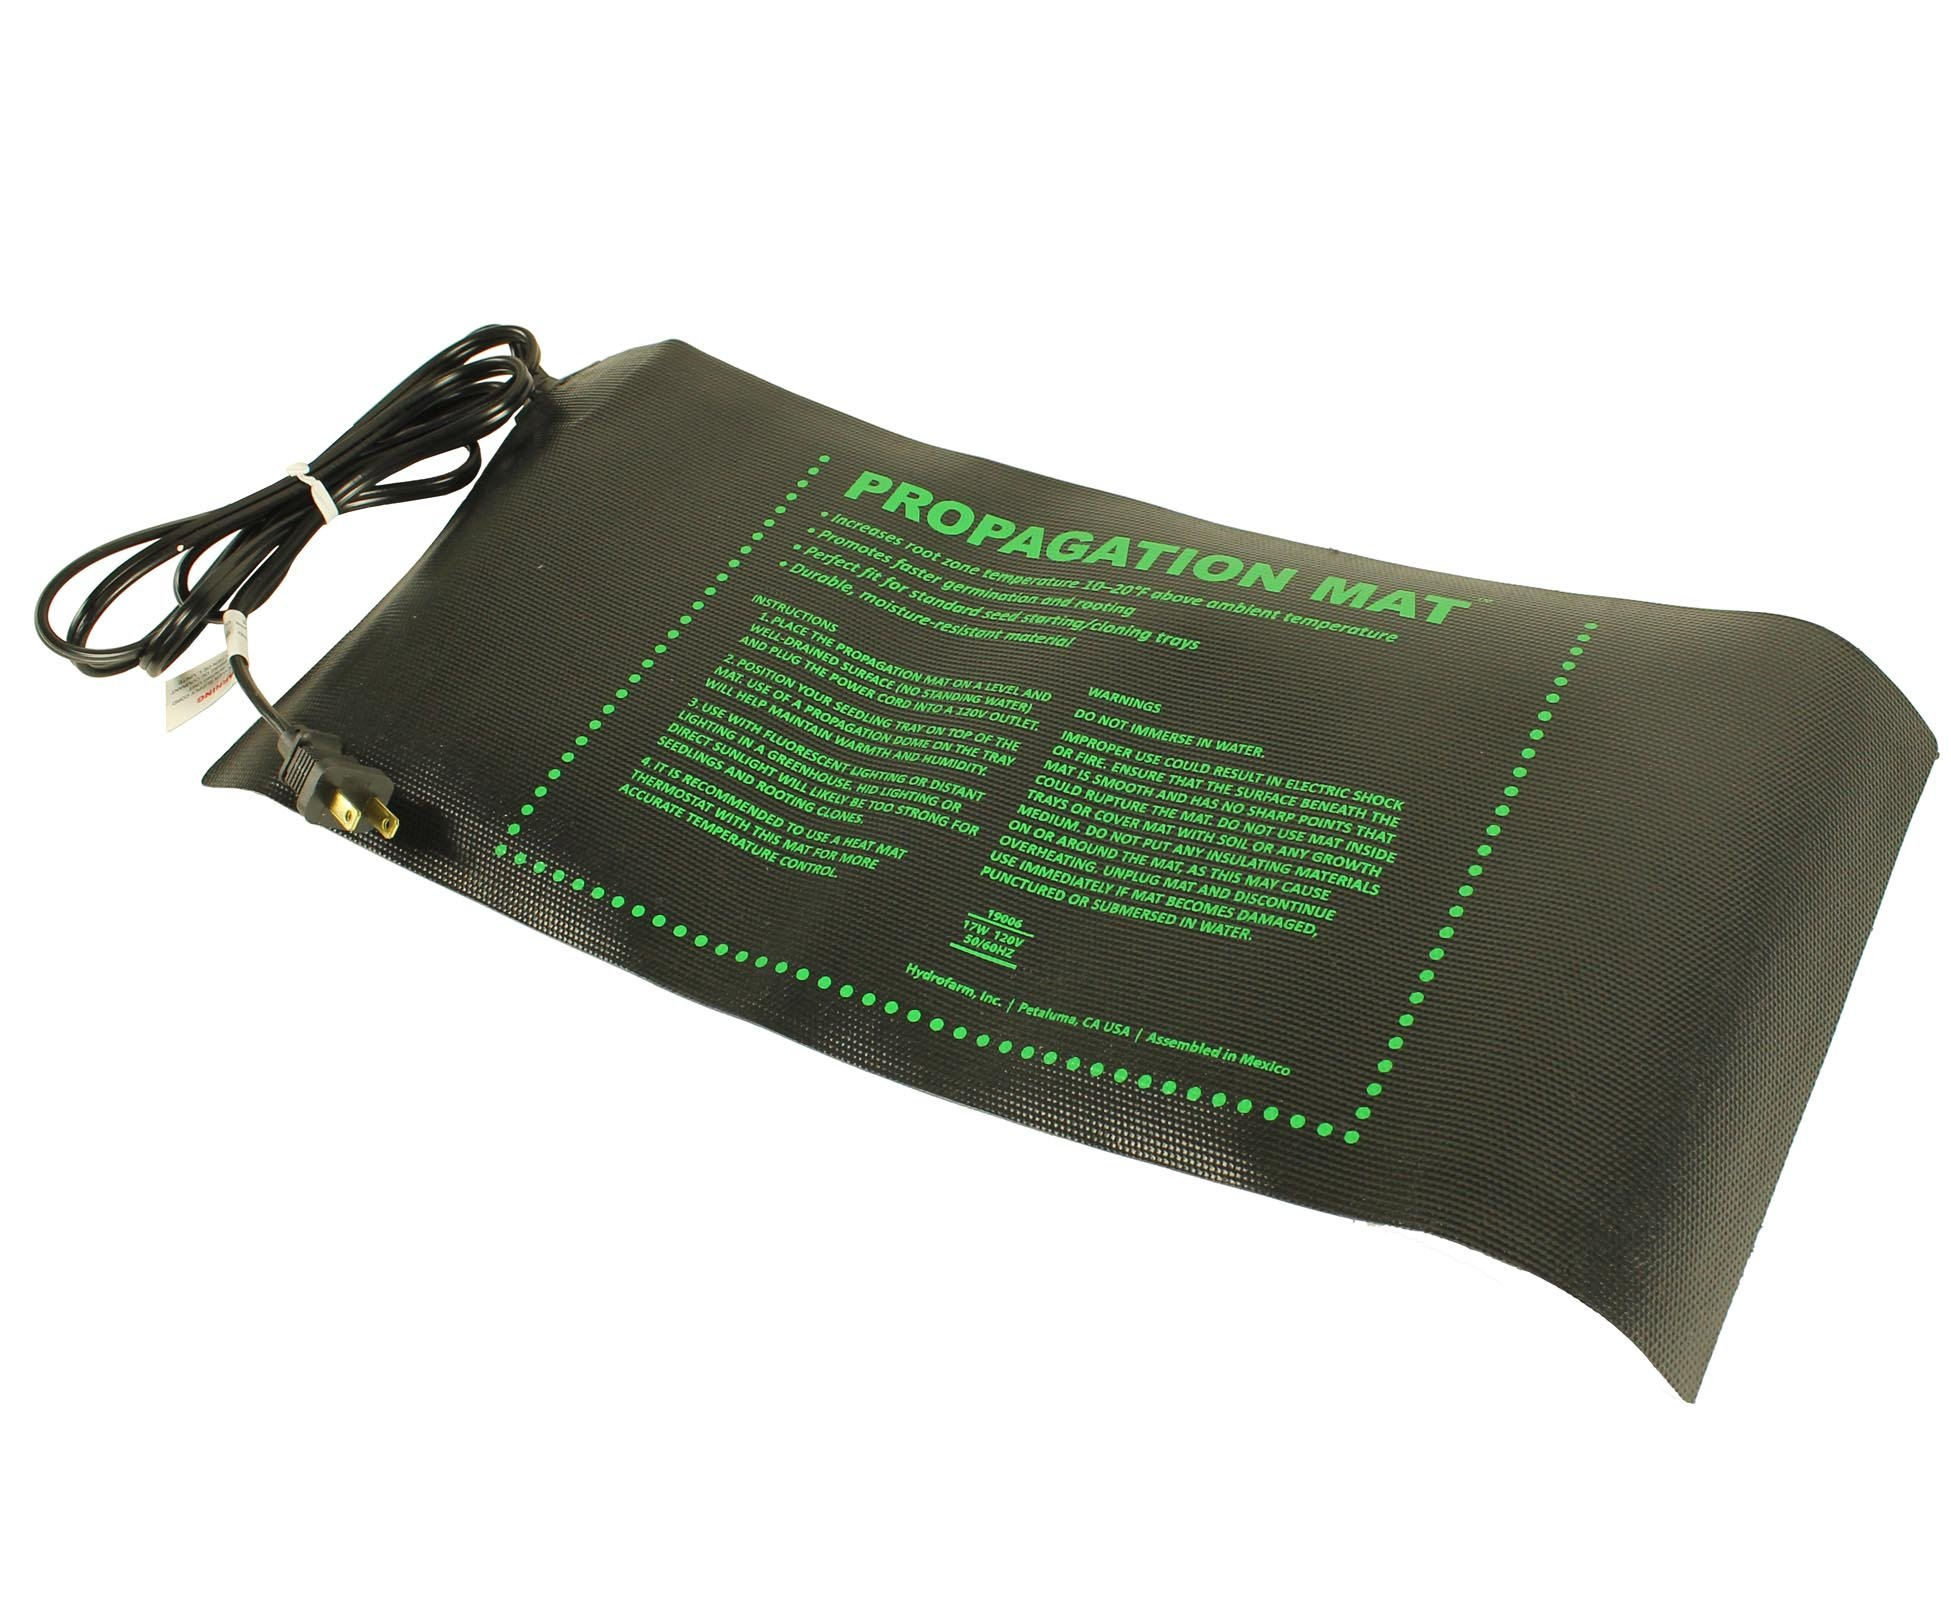 Dirt Genius Propagation Mat 17 Watt, 19006, Measures 8.88'' x 19.5'', with 6' power cord